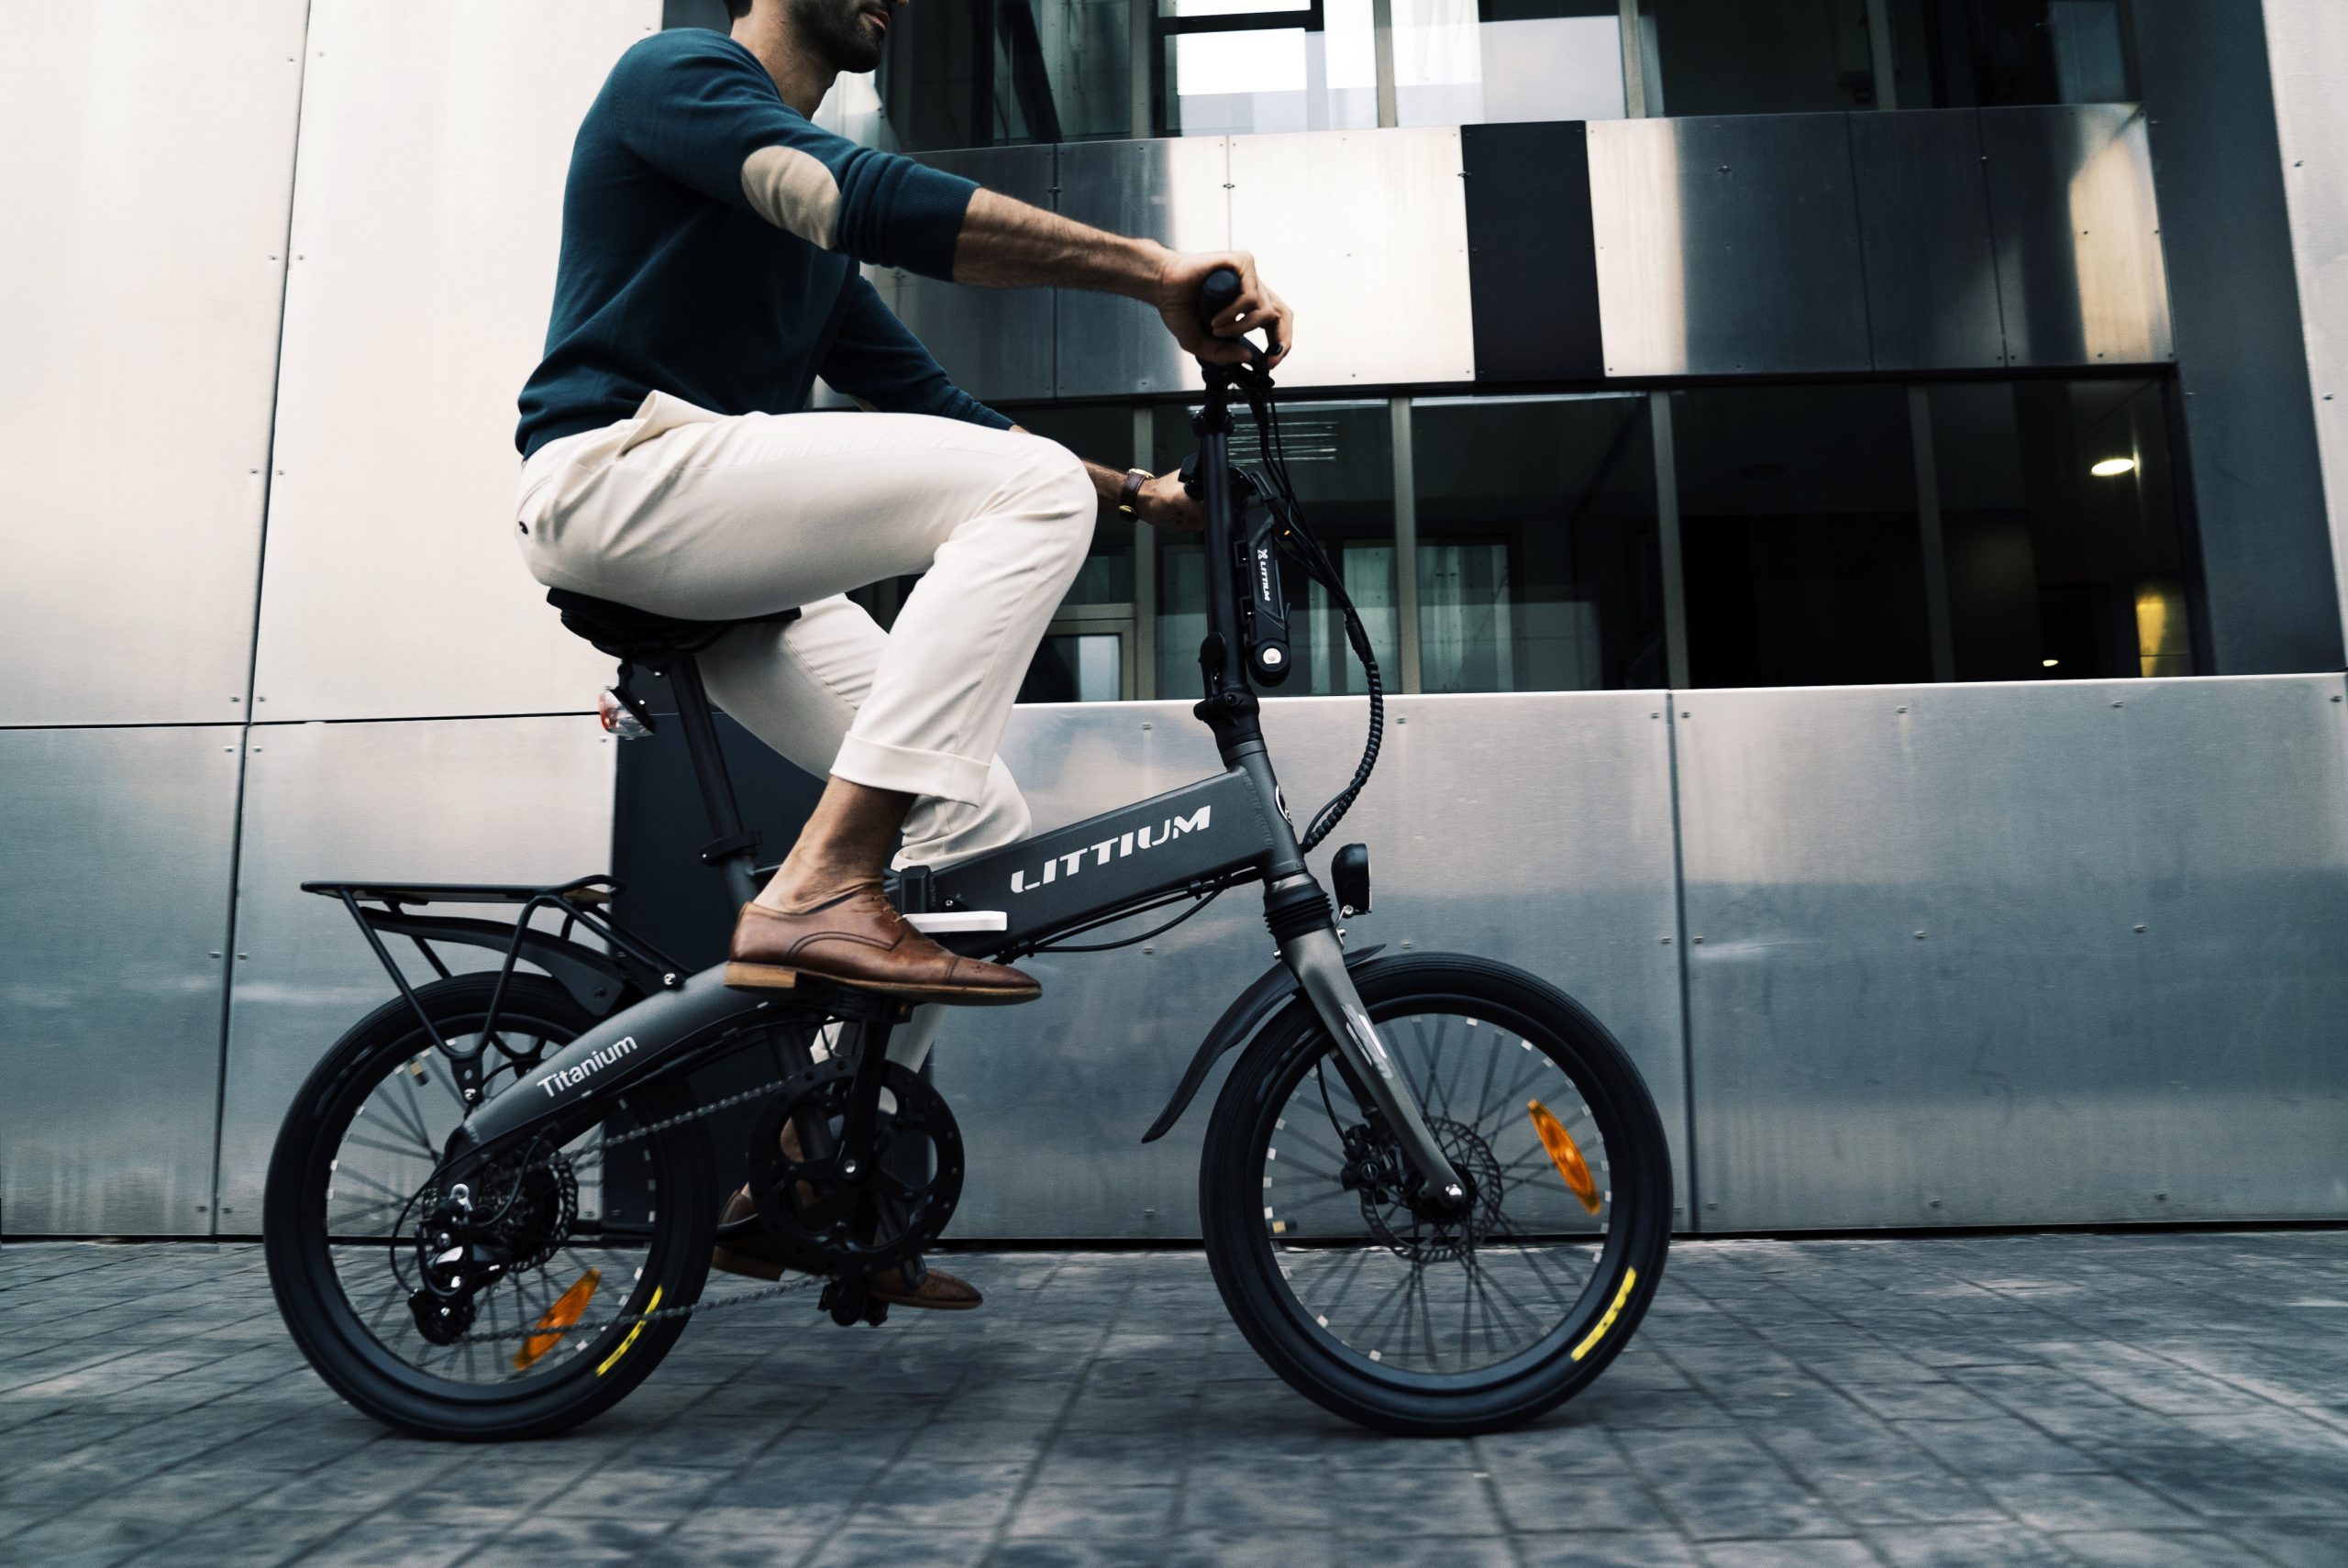 Ebikes: movilidad sostenible, transporte inteligente